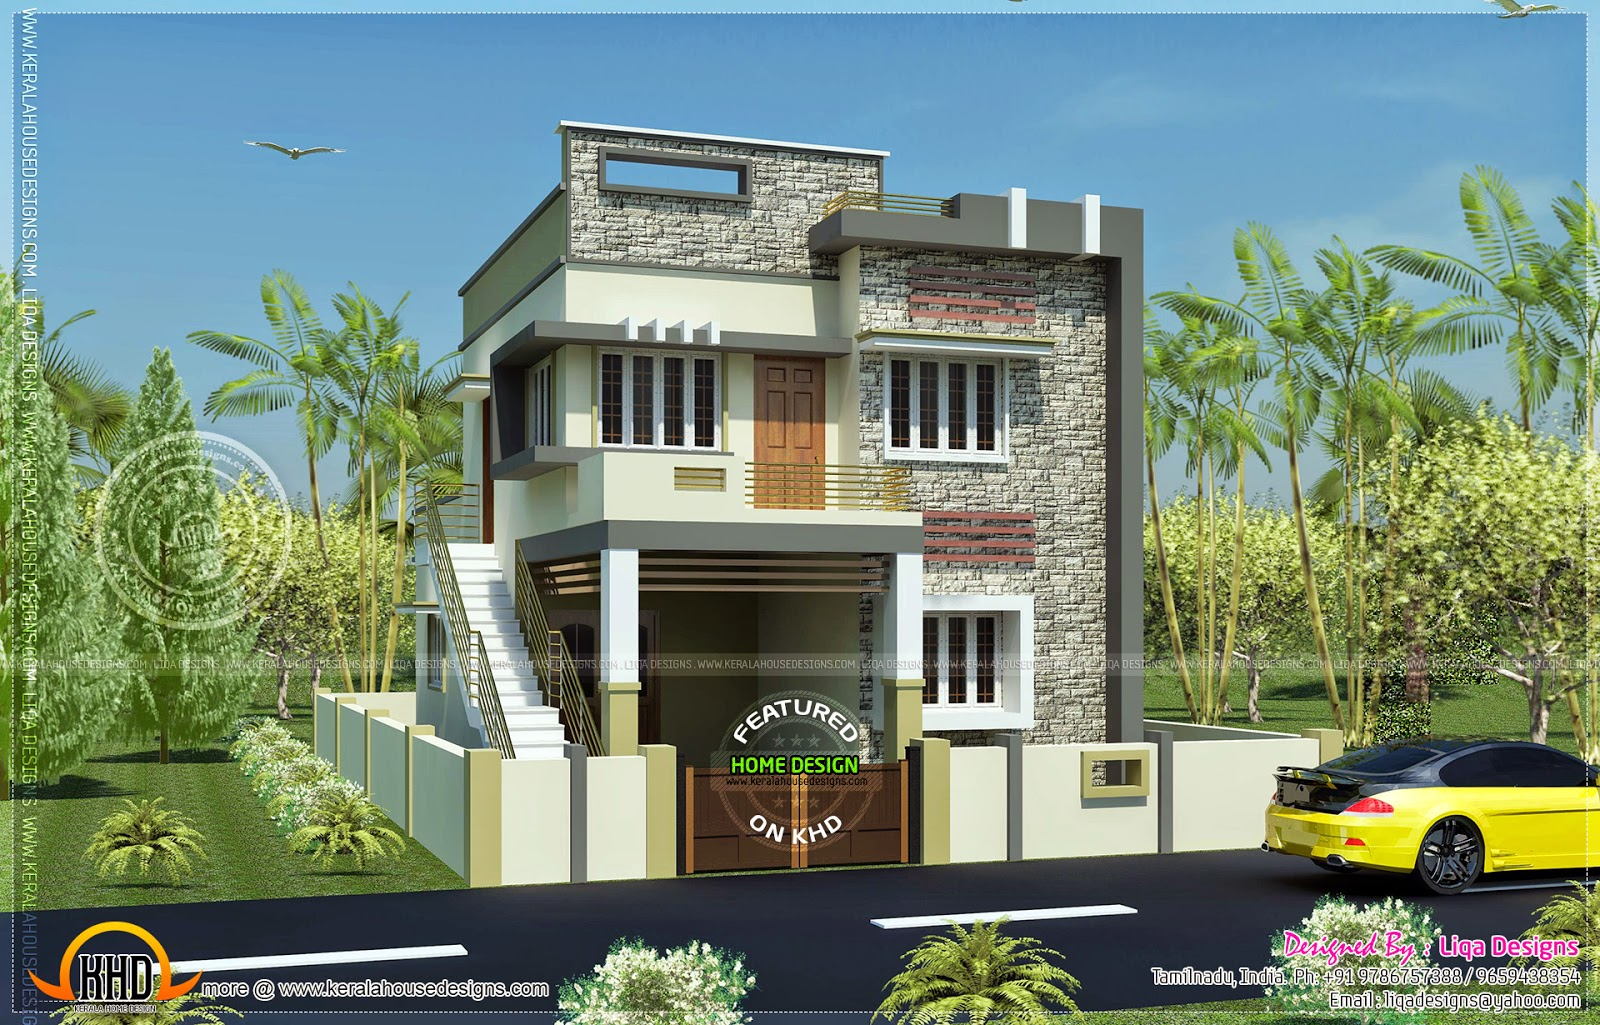 1289 sq ft 4 bedroom modern tamil house design kerala for Tamilnadu house designs photos